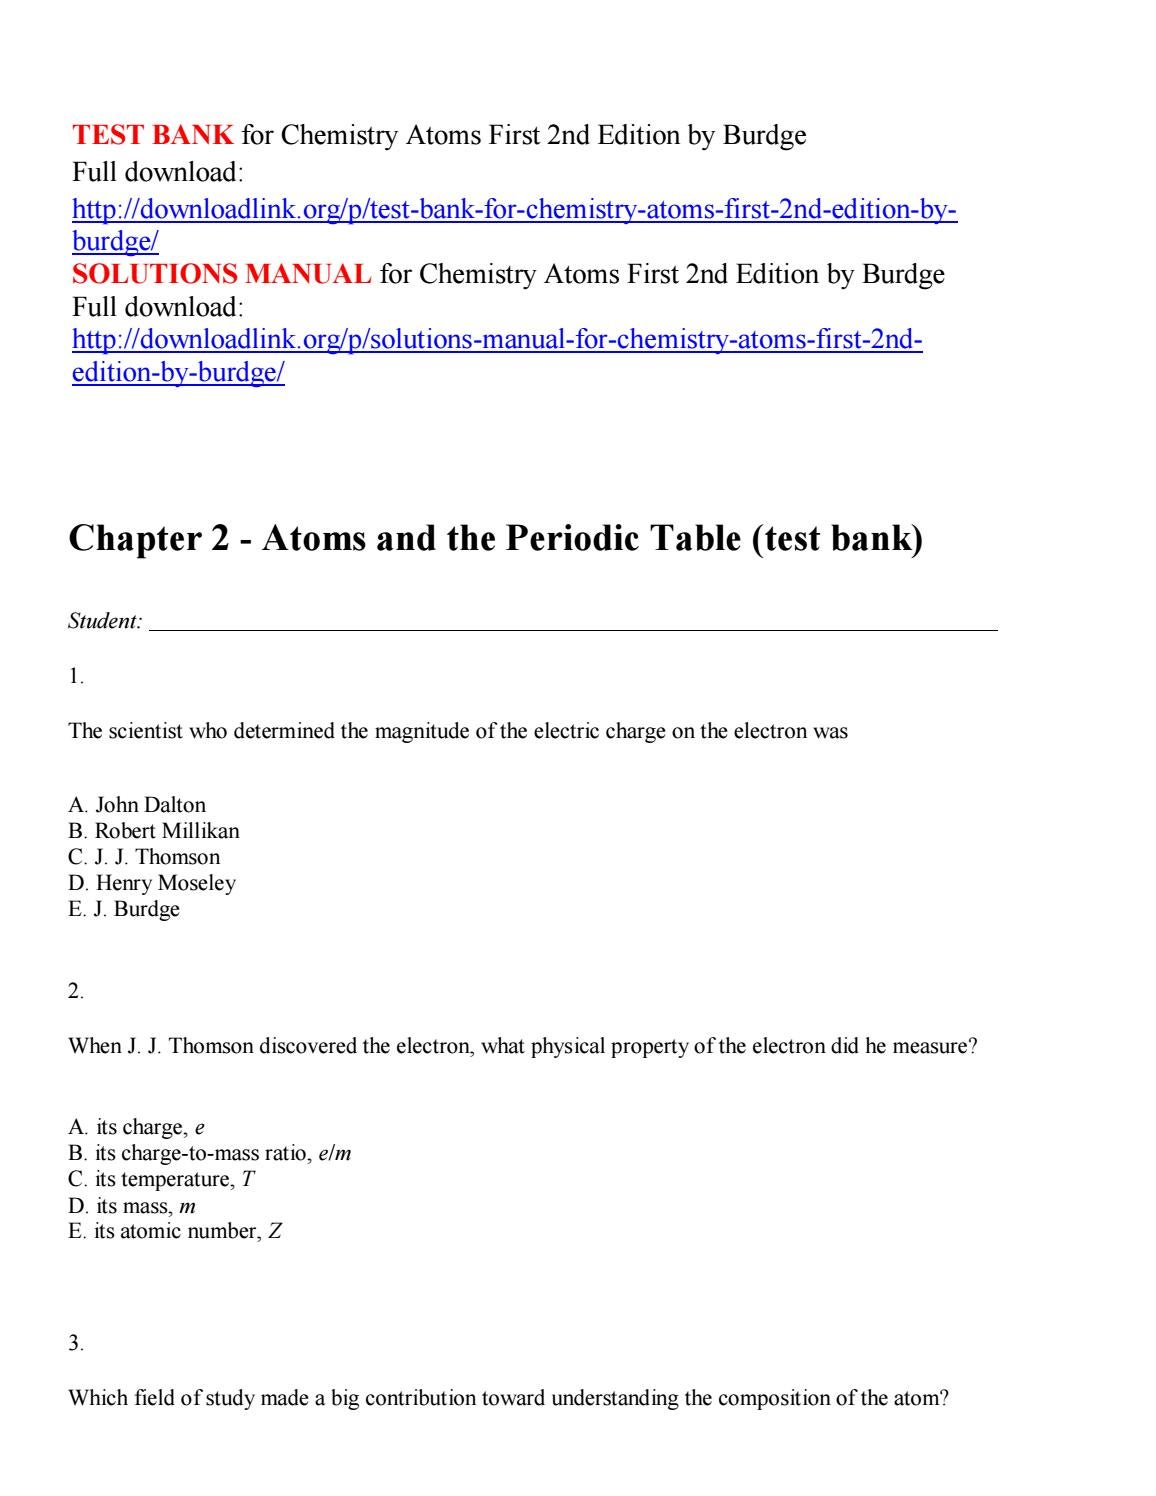 Test bank for chemistry atoms first 2nd edition by burdge by Nature123 -  issuu